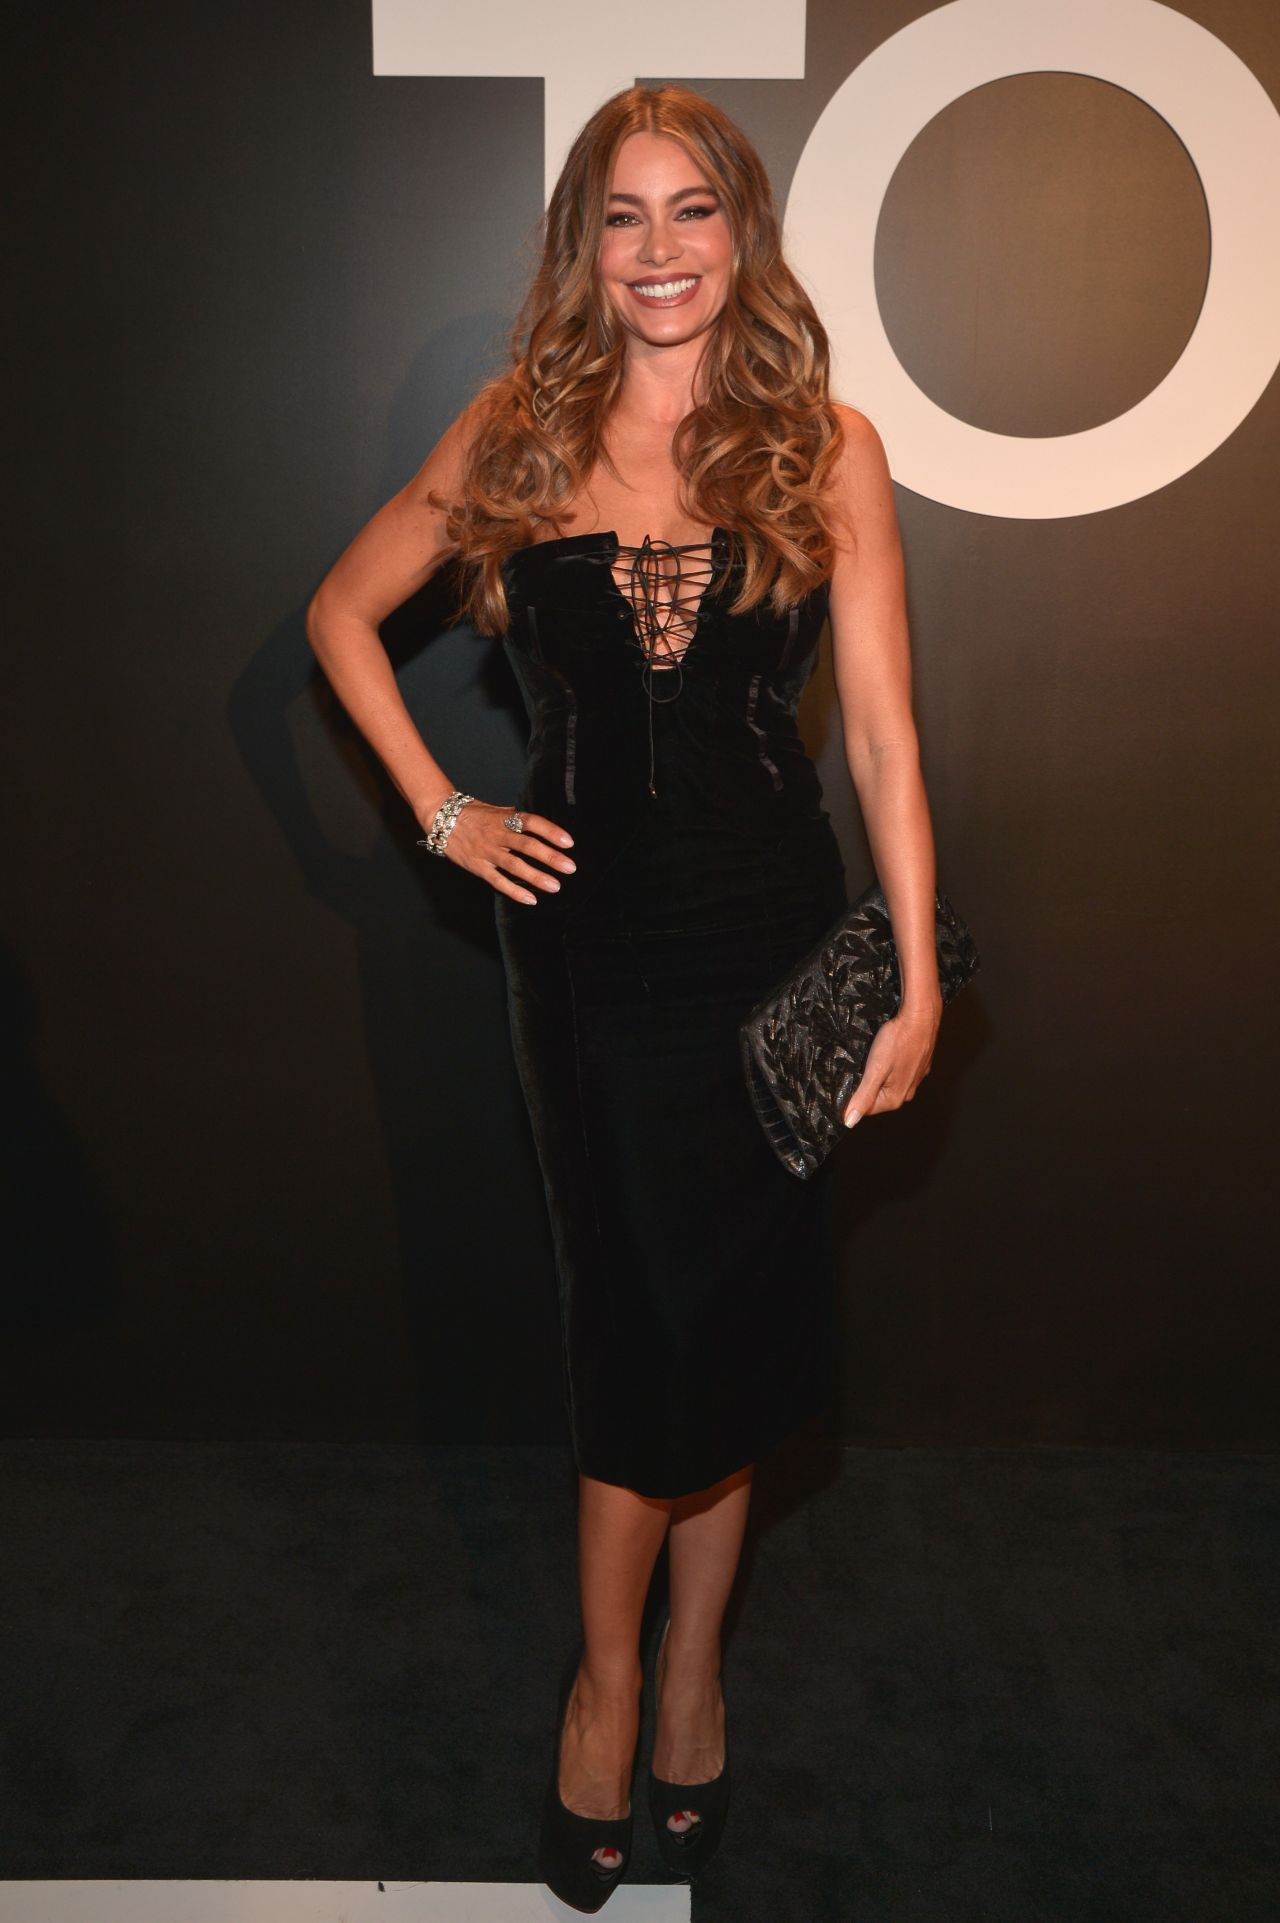 sofia-vergara-tom-ford-autumn-winter-2015-womenswear-collection-presentation-in-los-angeles_1